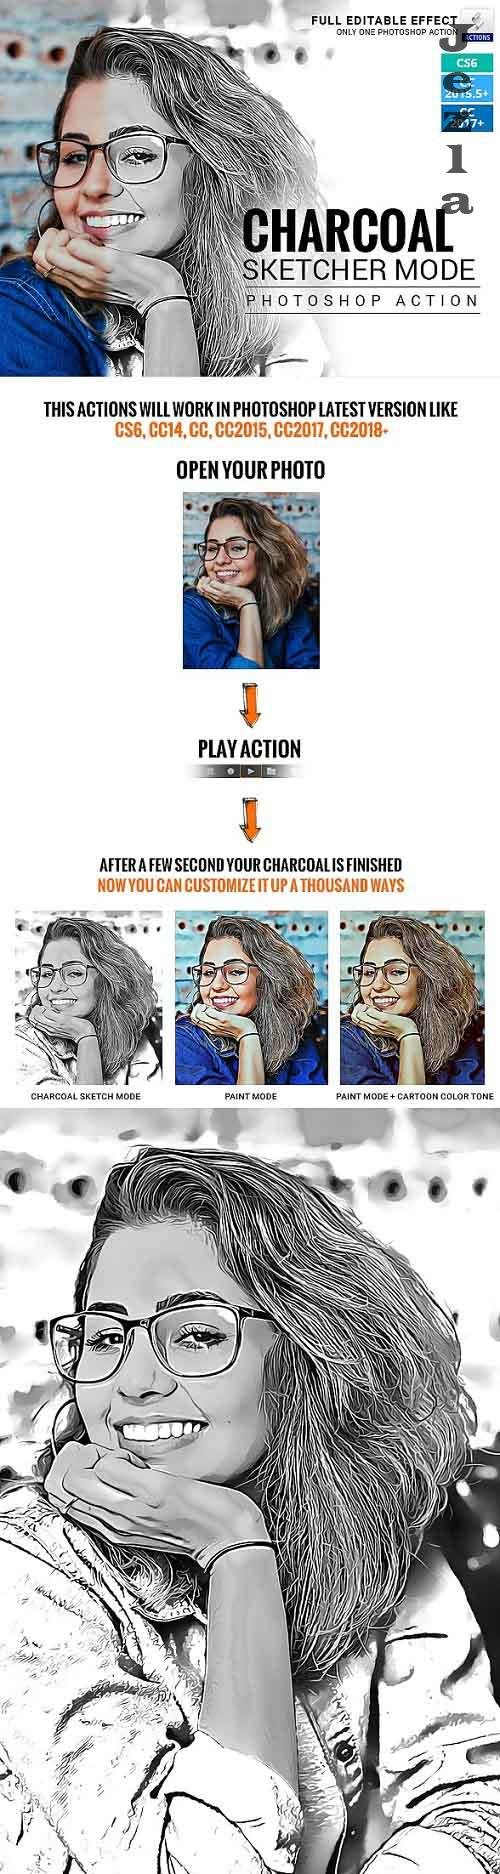 GraphicRiver - Charcoal Sketcher Mode - Photoshop Action 28741156